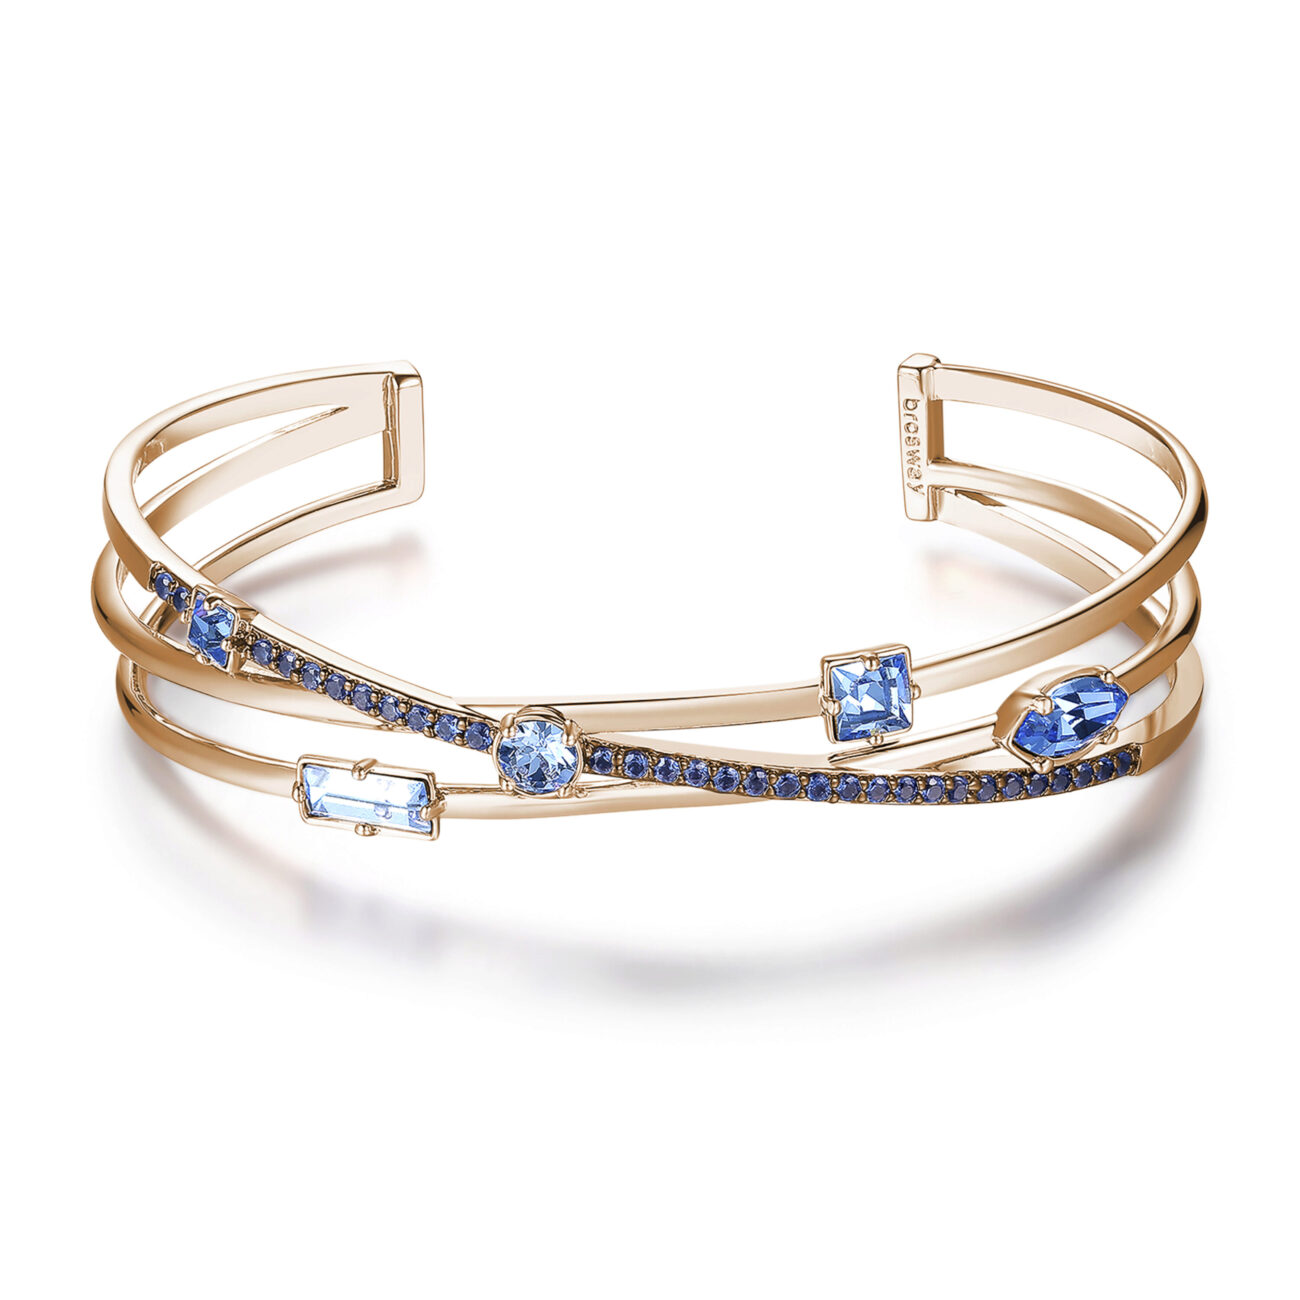 Rhodiated brass bracelet and rose gold galvanic with blue zircons and light sapphire Swarovski©crystals.